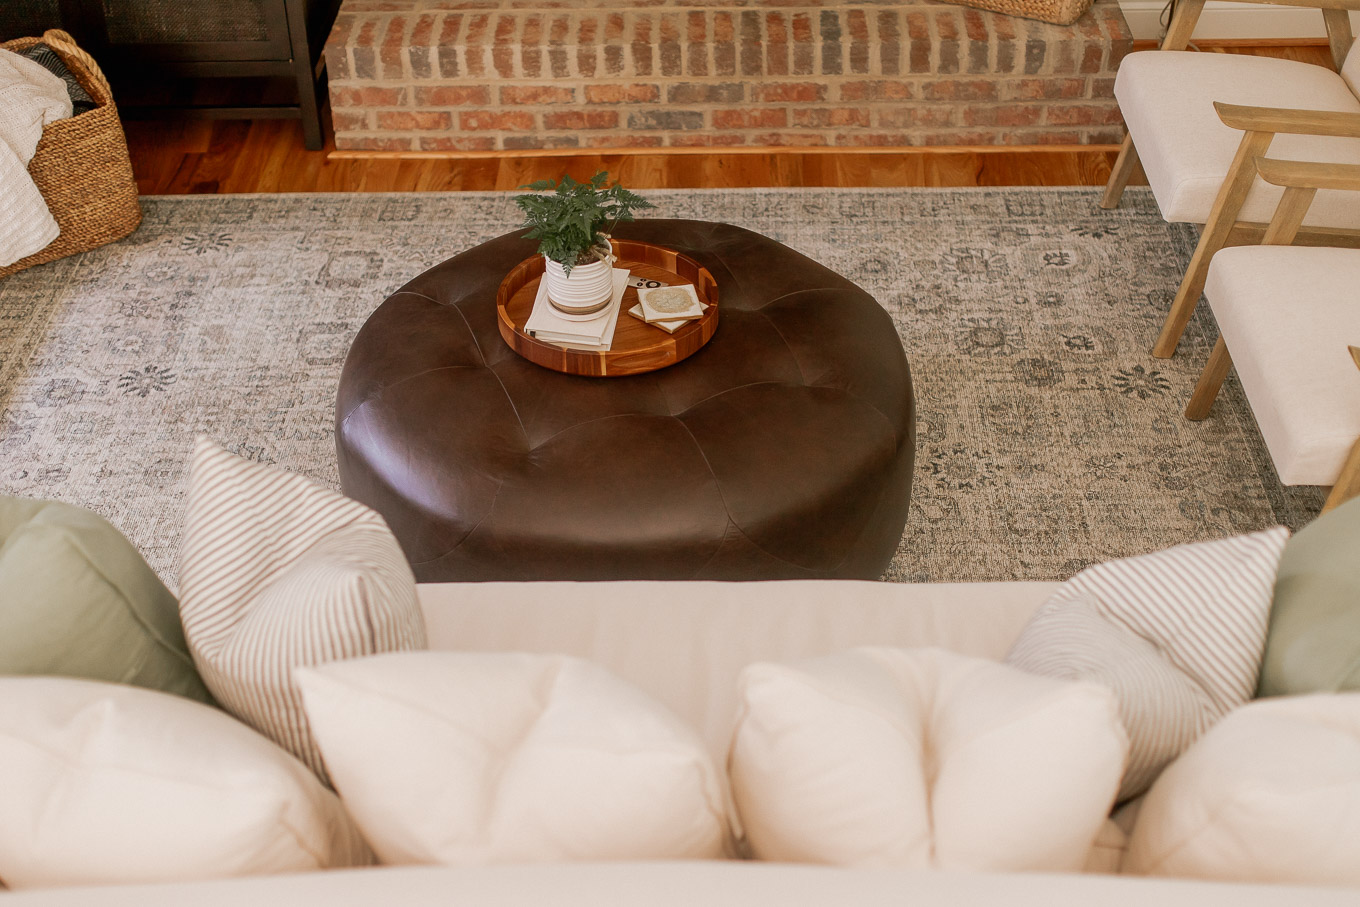 Round Leather Ottoman | Searching for the Perfect Coffee Table - Article Timpani Ottoman Review - Louella Reese, North Carolina Lifestyle and Fashion Blog